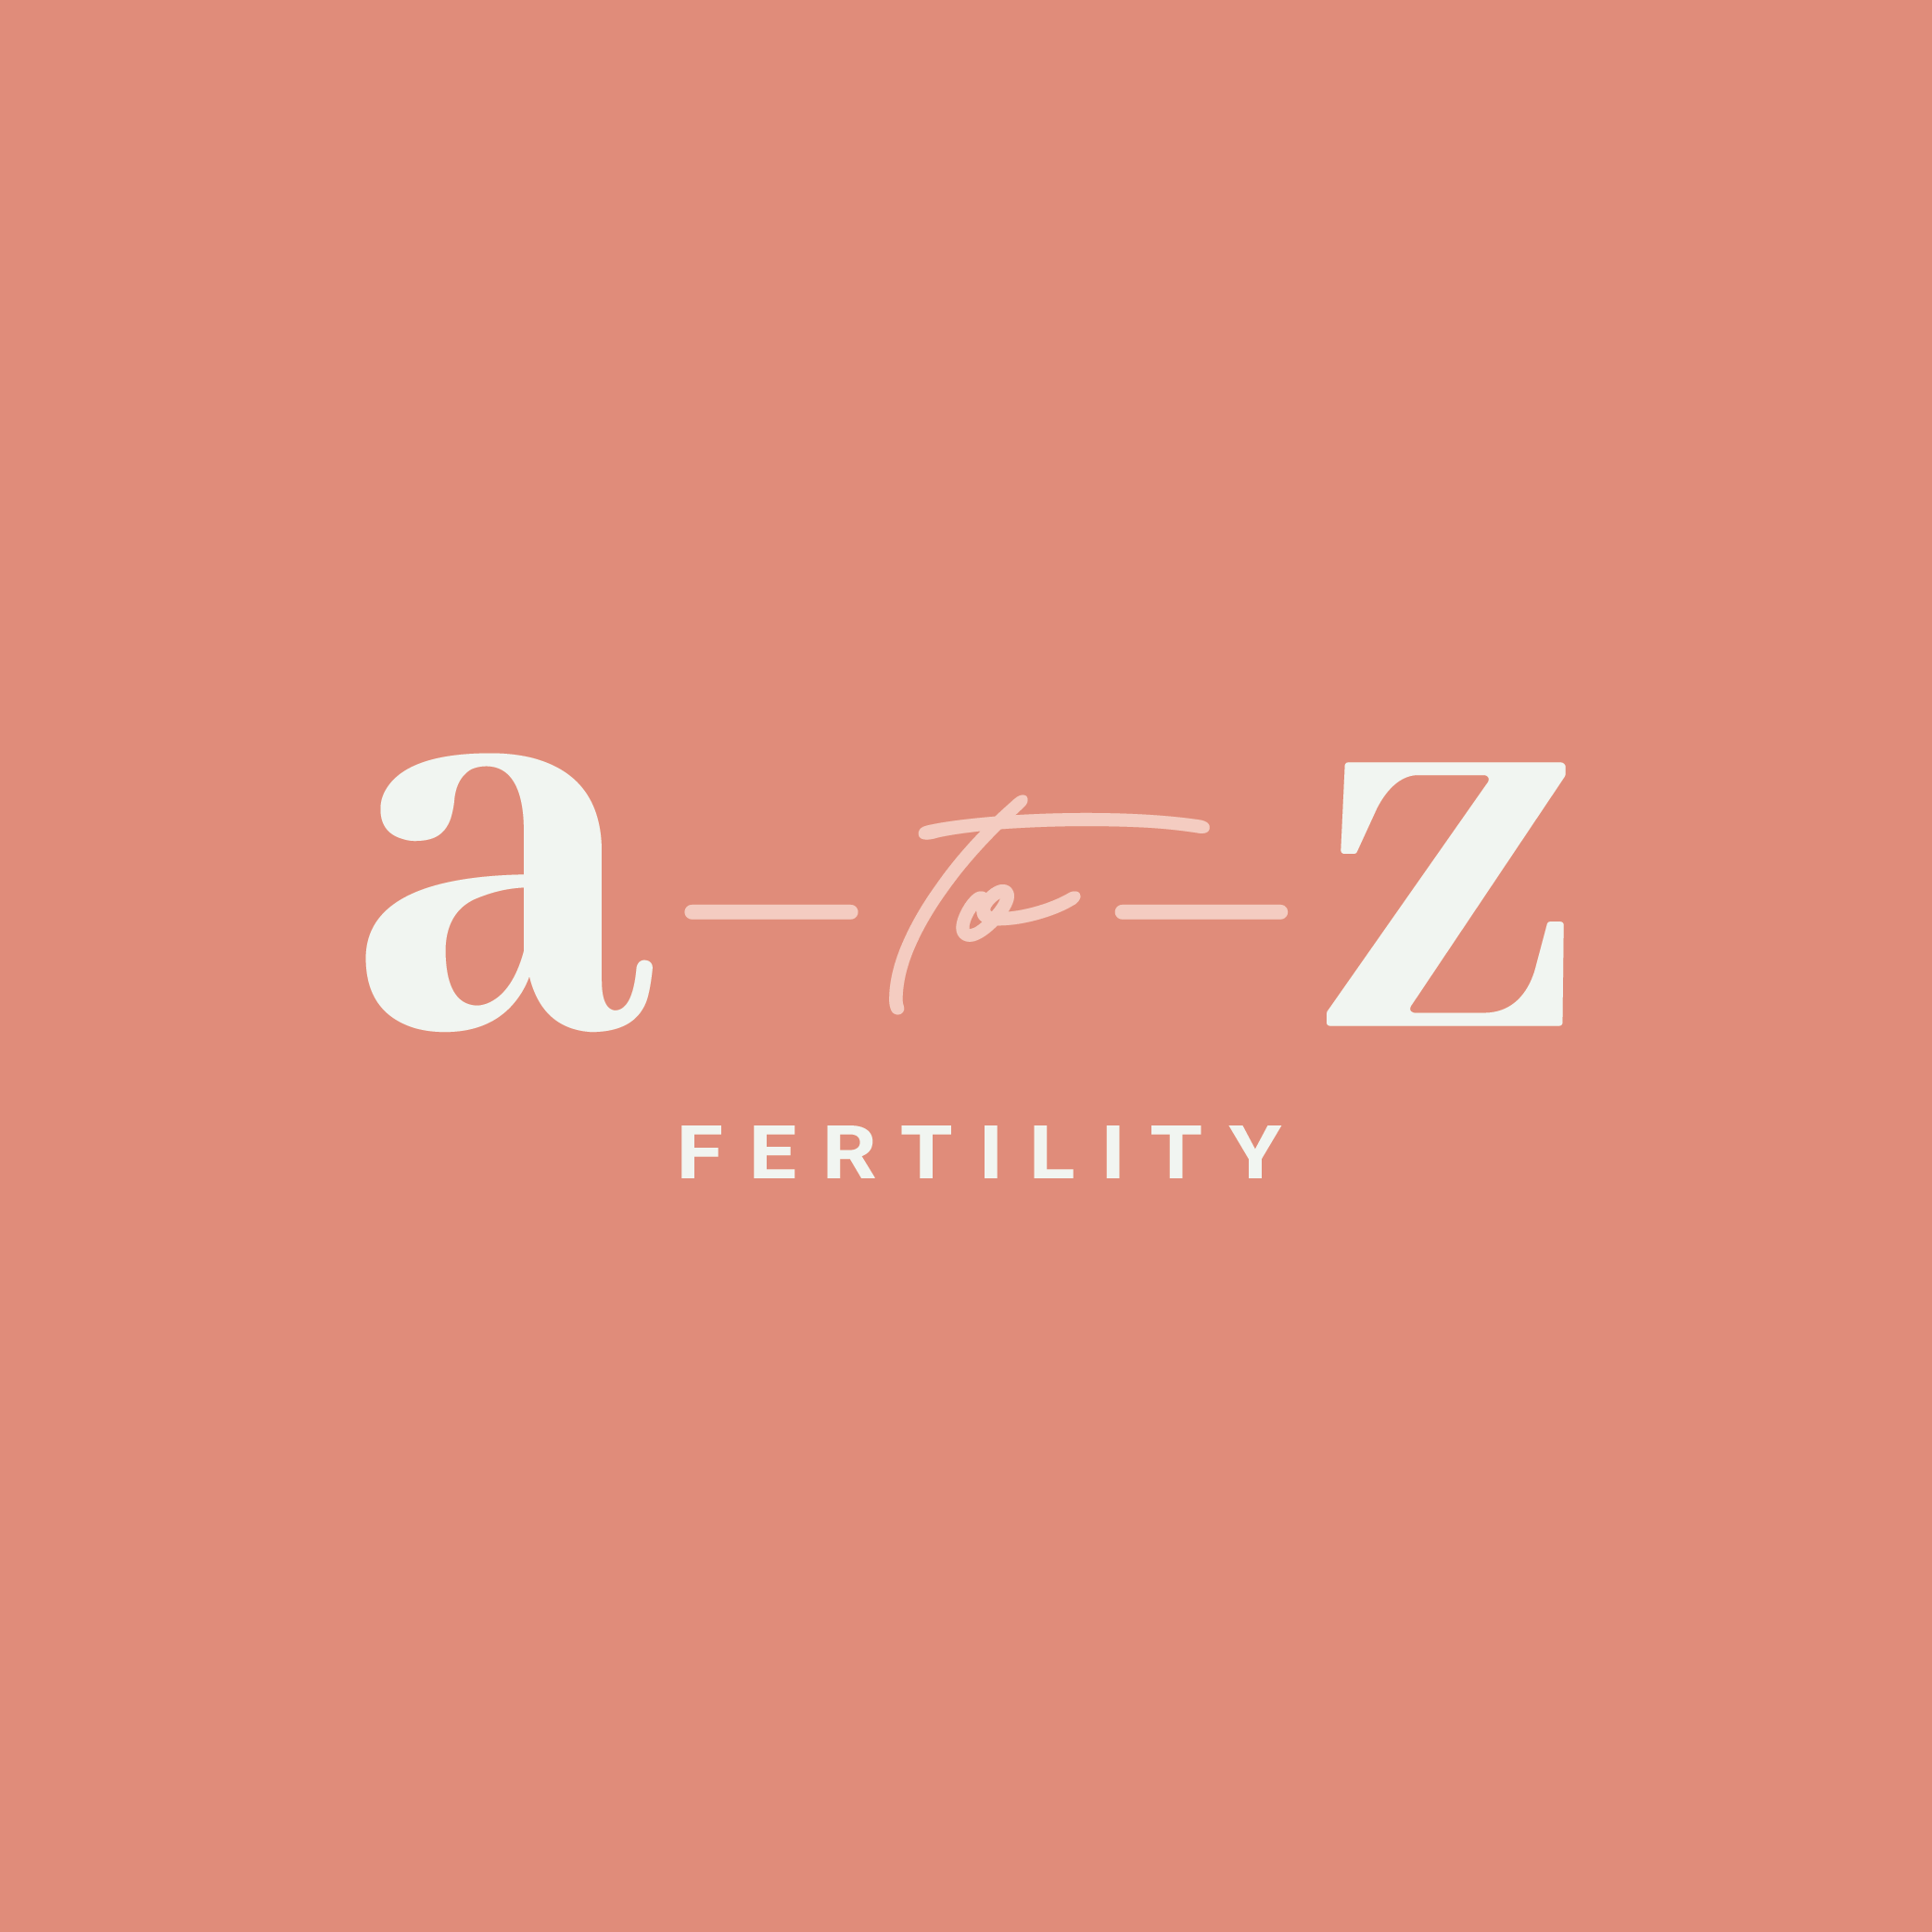 fertility clinic brand design by Function Creative Co.